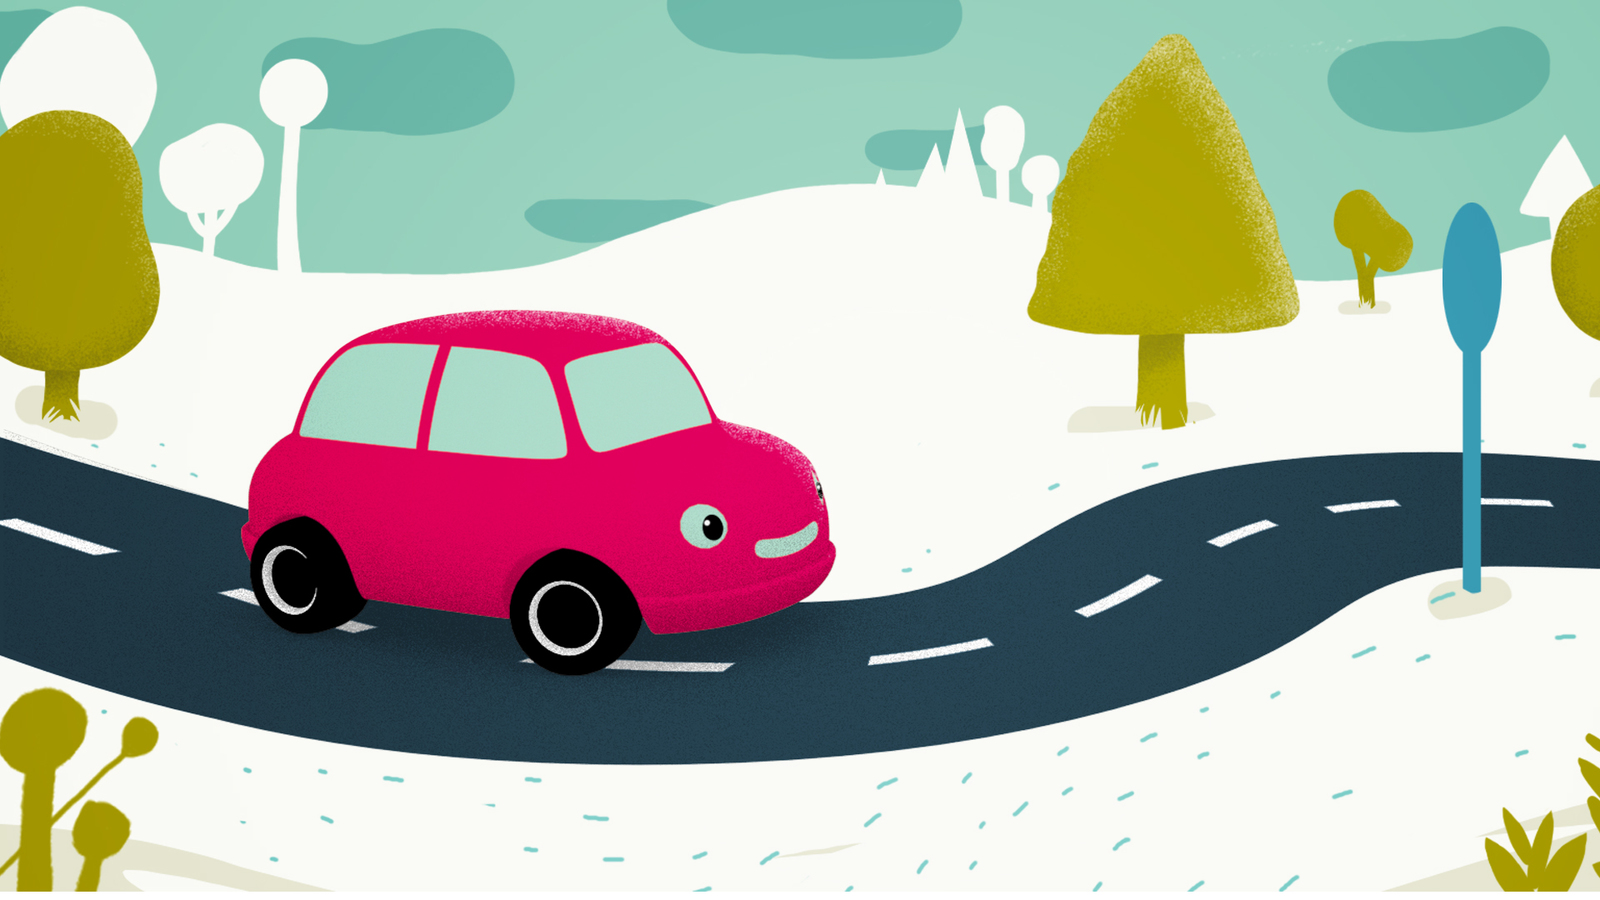 A 2D design of a pink car travelling down a winding road lined with trees and plants.